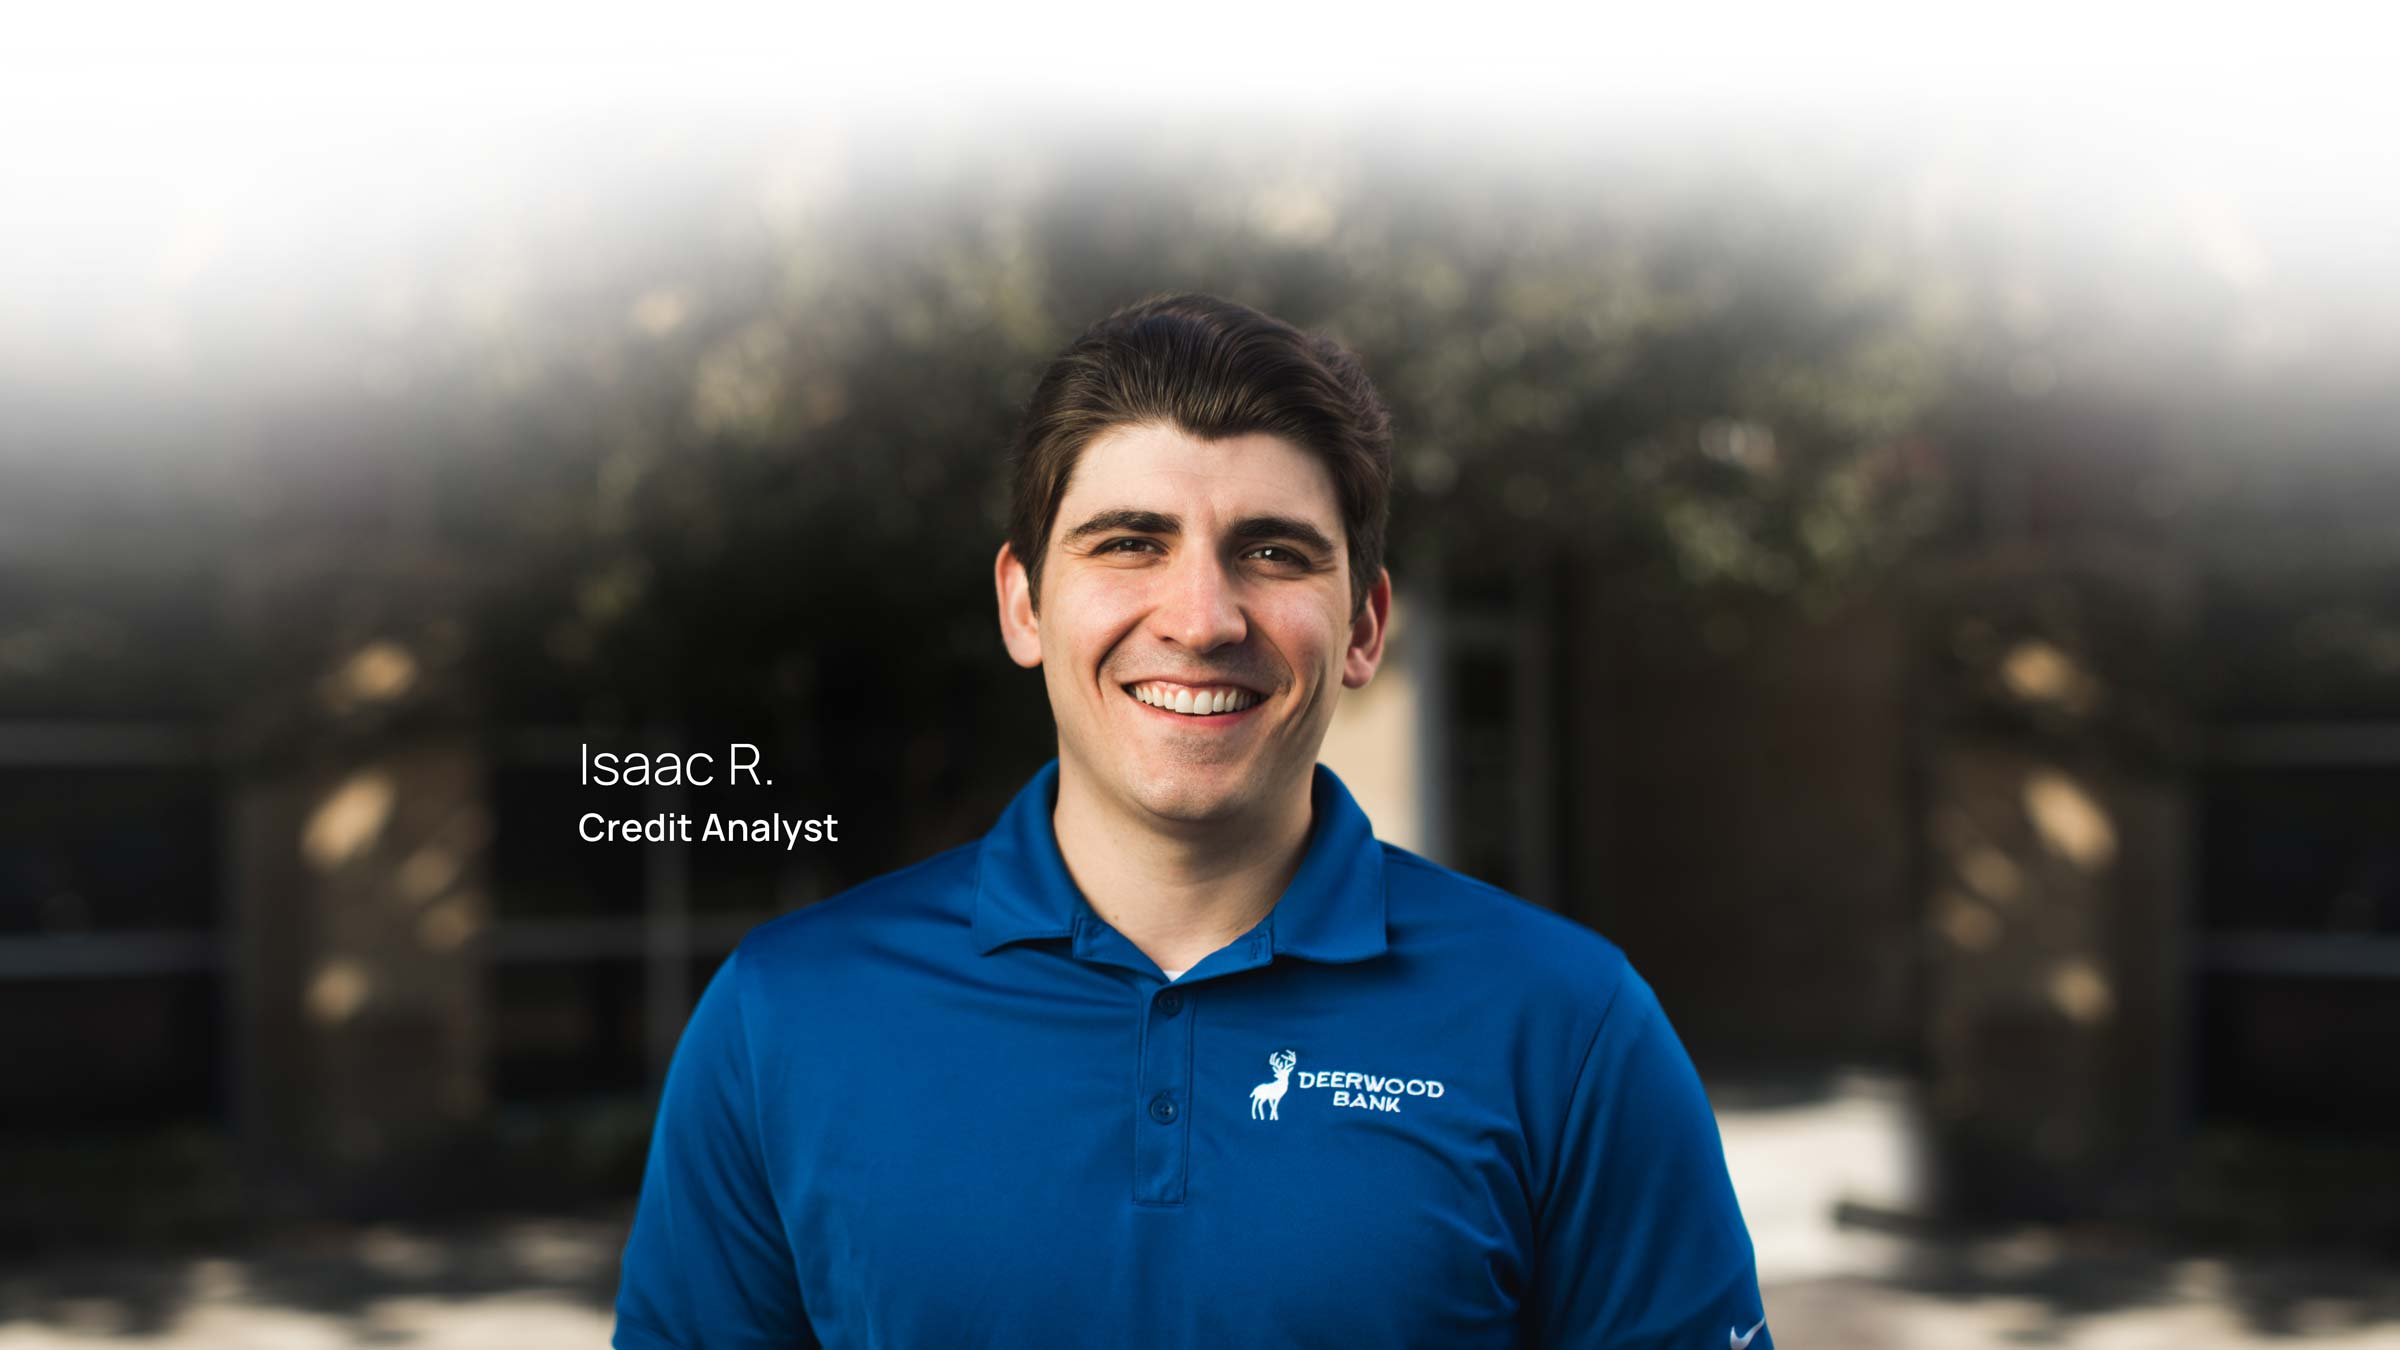 Isaac R. Credit Analyst